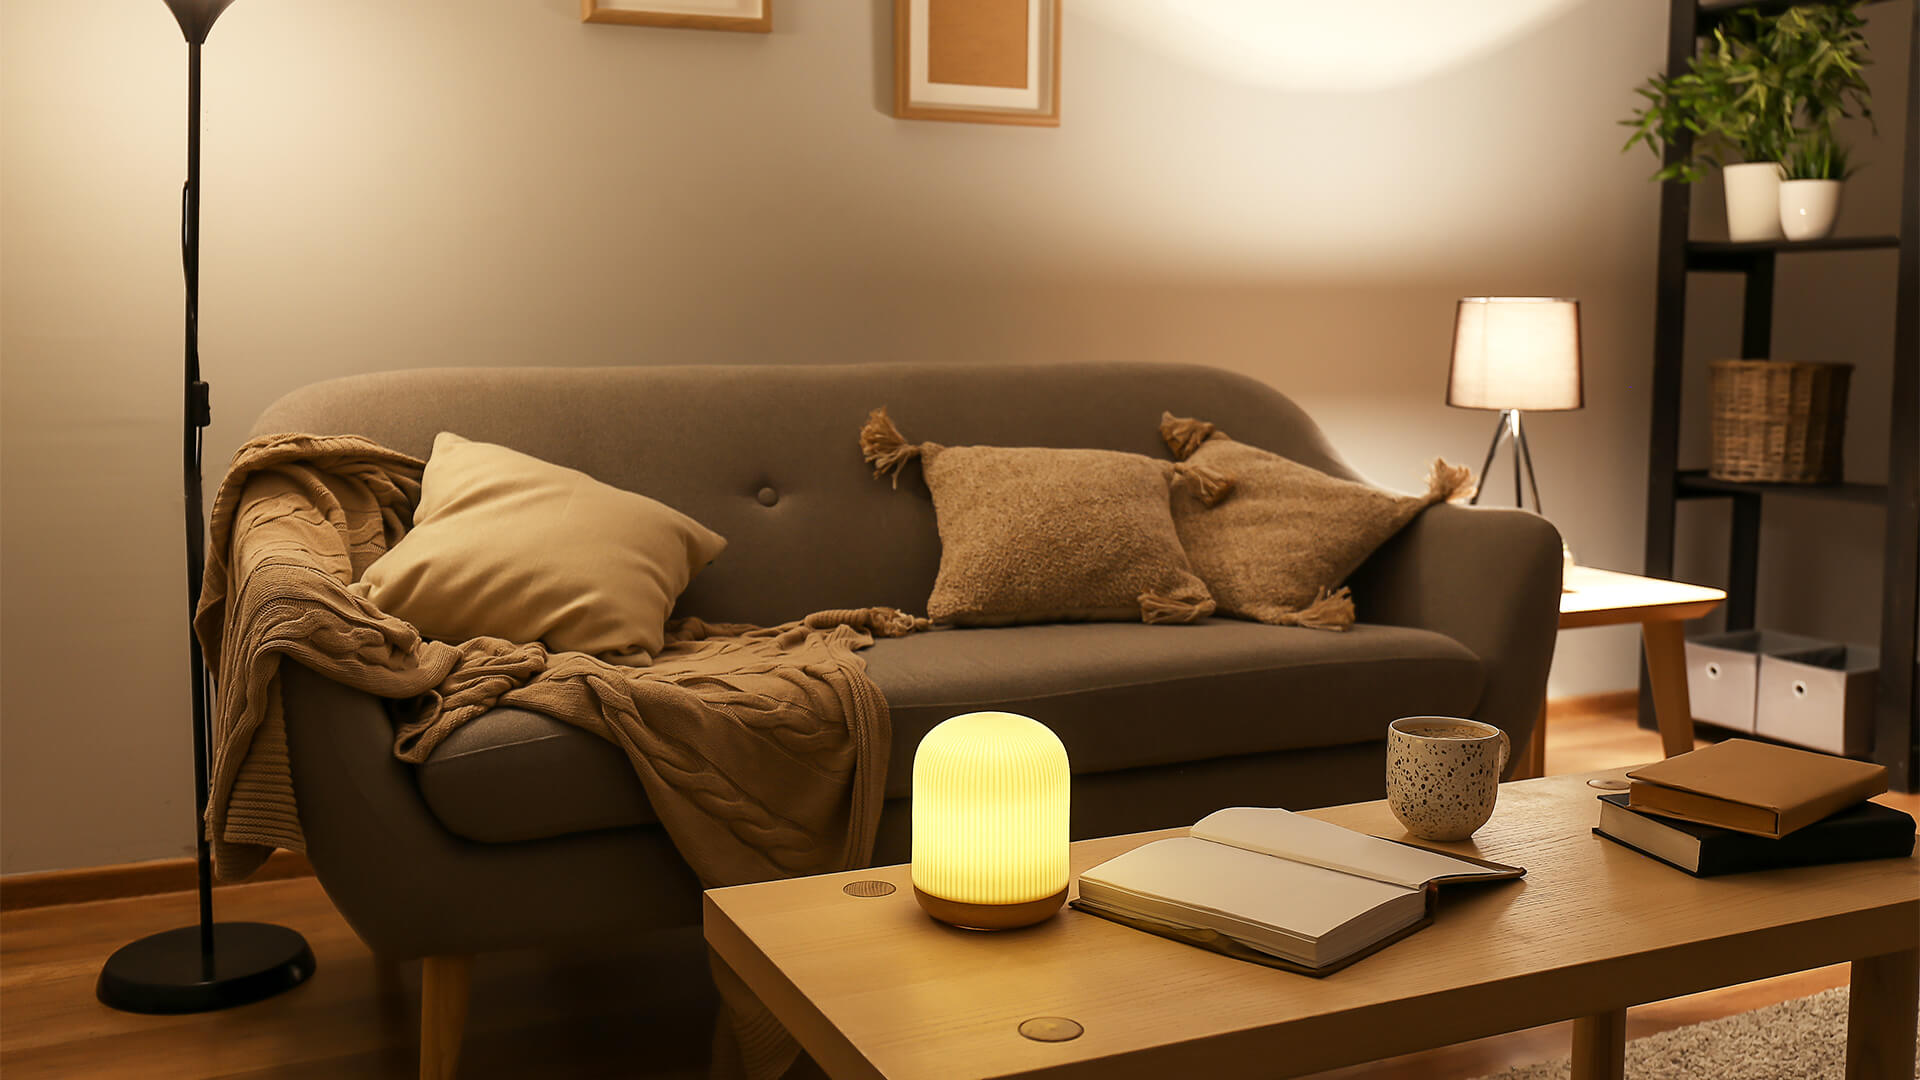 7 easy tips for making your home cosy